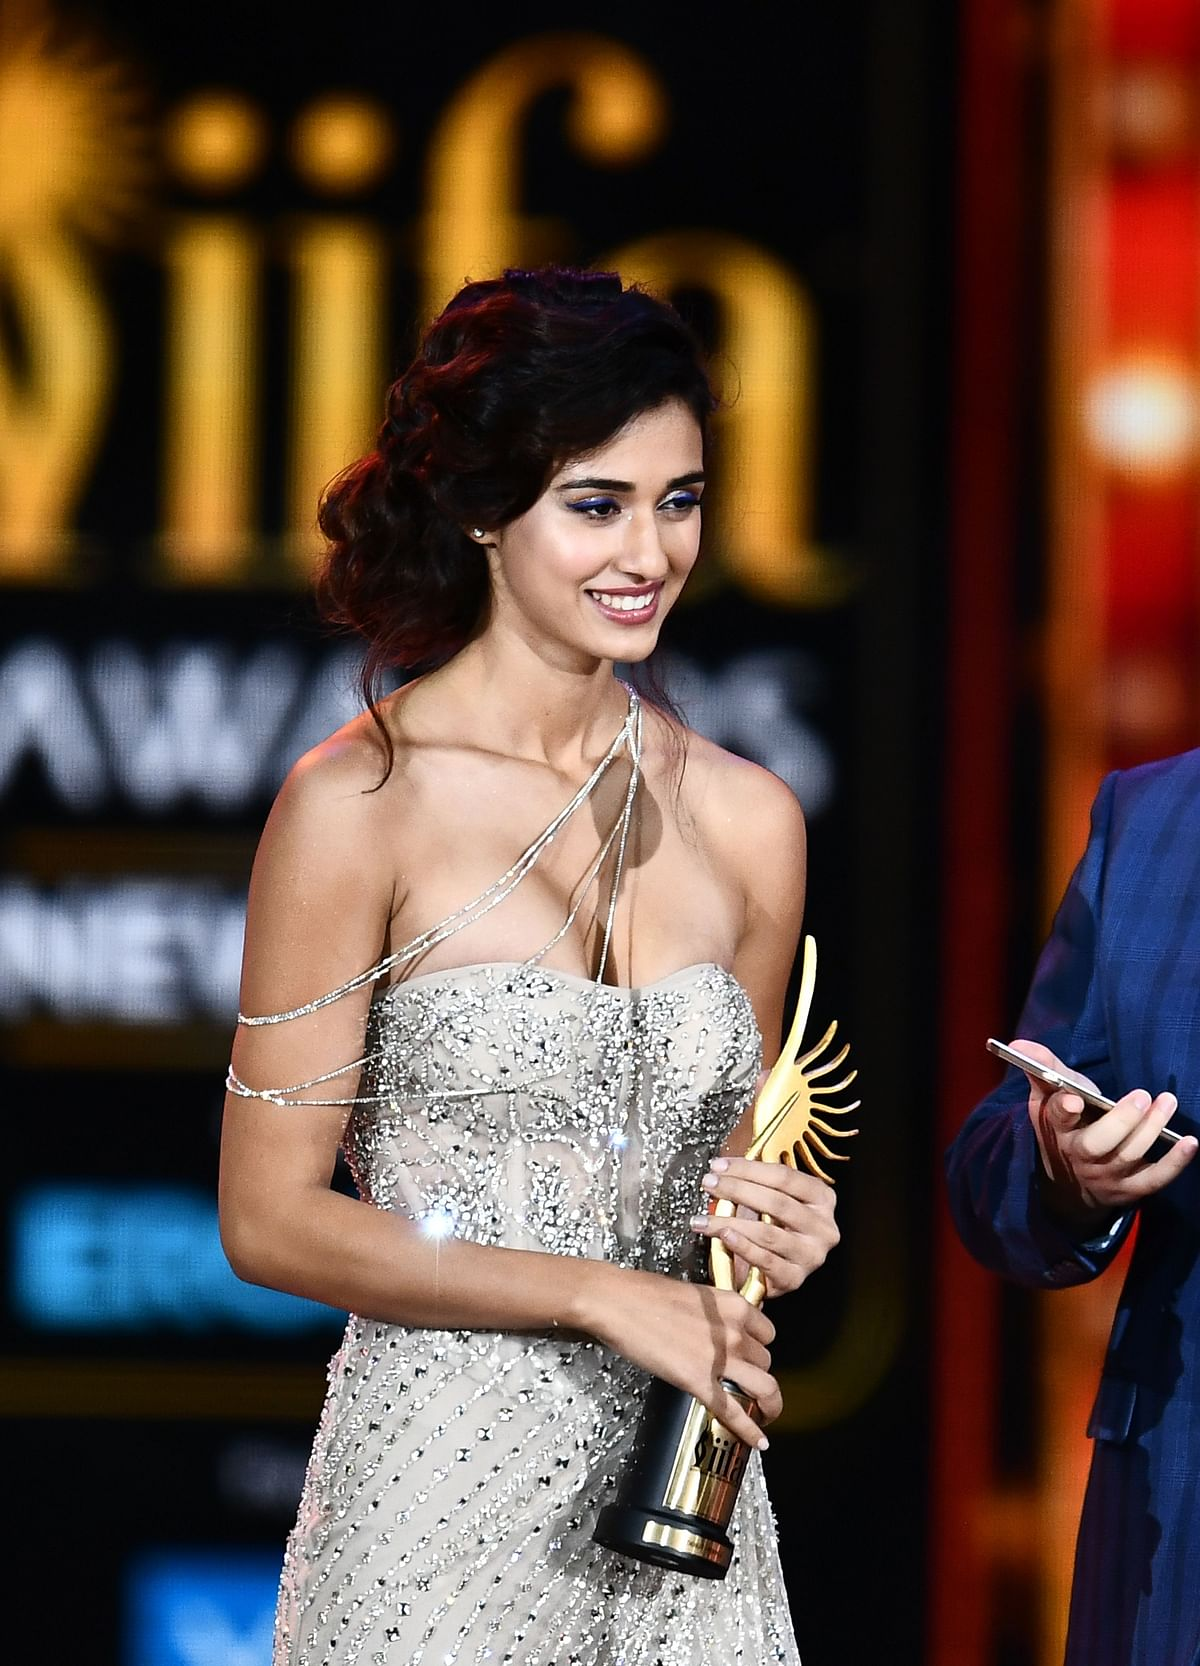 Bollywood actress Disha Patani accepts Best Debut actress award during the 18th International Indian Film Academy (IIFA) Festival at the MetLife Stadium in East Rutherford, New Jersey, on July 15, 2017. / AFP PHOTO / JEWEL SAMAD